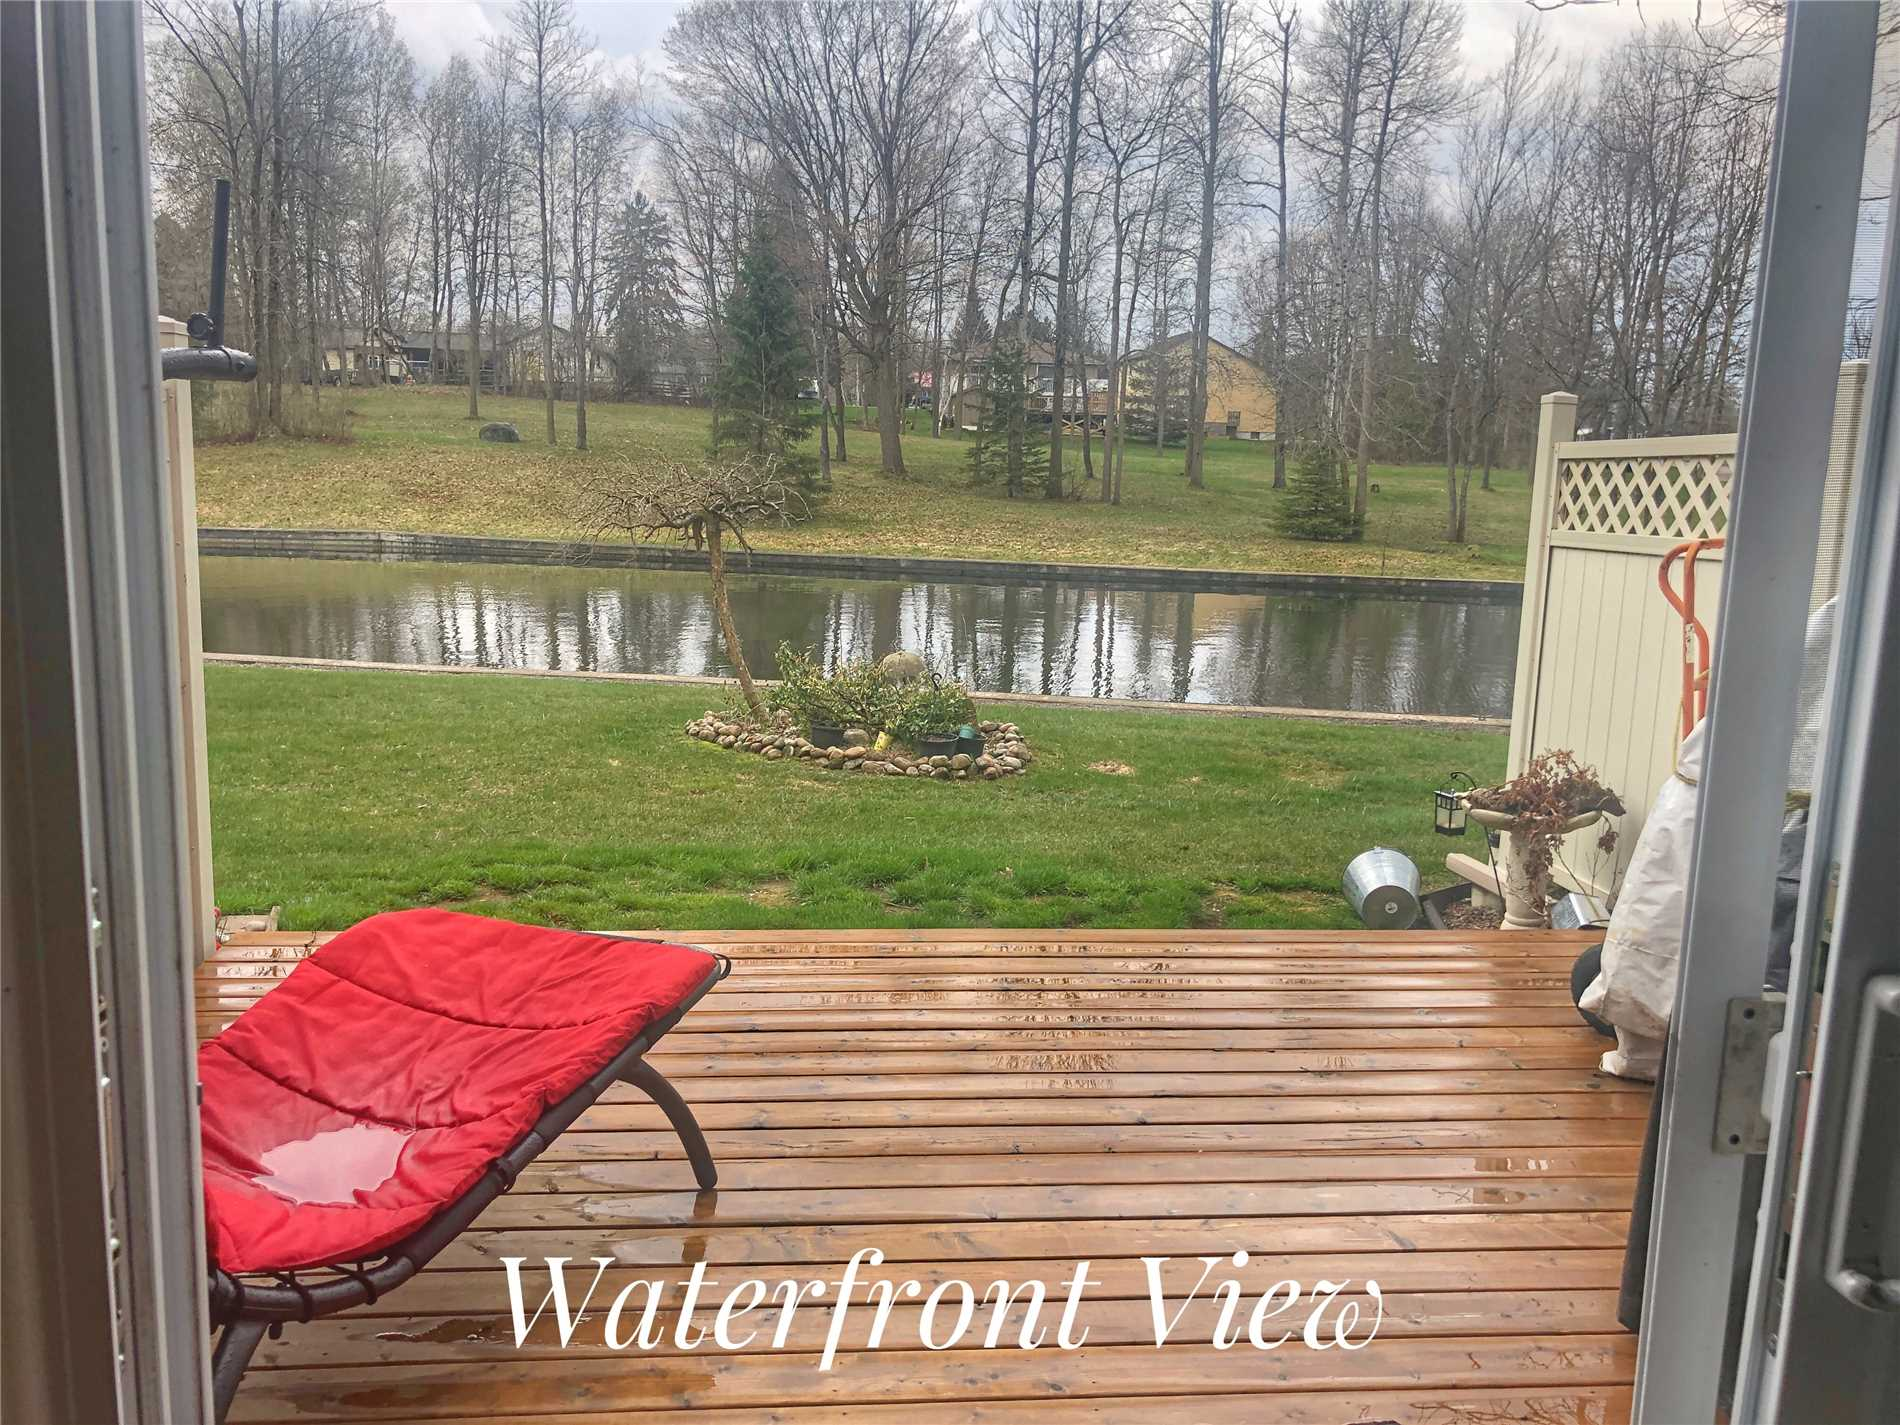 Offering 1 Bedroom Condominium In Lagoon City. Updated Open Concept Living Room Overlooking The Water. Perfect For A Professional Individual Or Couple. Lease Includes Boat Mooring Space With Access To Lake Simcoe, A Heated Outdoor Pool And Access To A Private Beach. Start Living The Lagoon City Lifestyle Today!  1.5Hrs From Toronto, 20 Minutes To Orillia, Community Center, Marina, Walking Trails, Tennis And Restaurants.